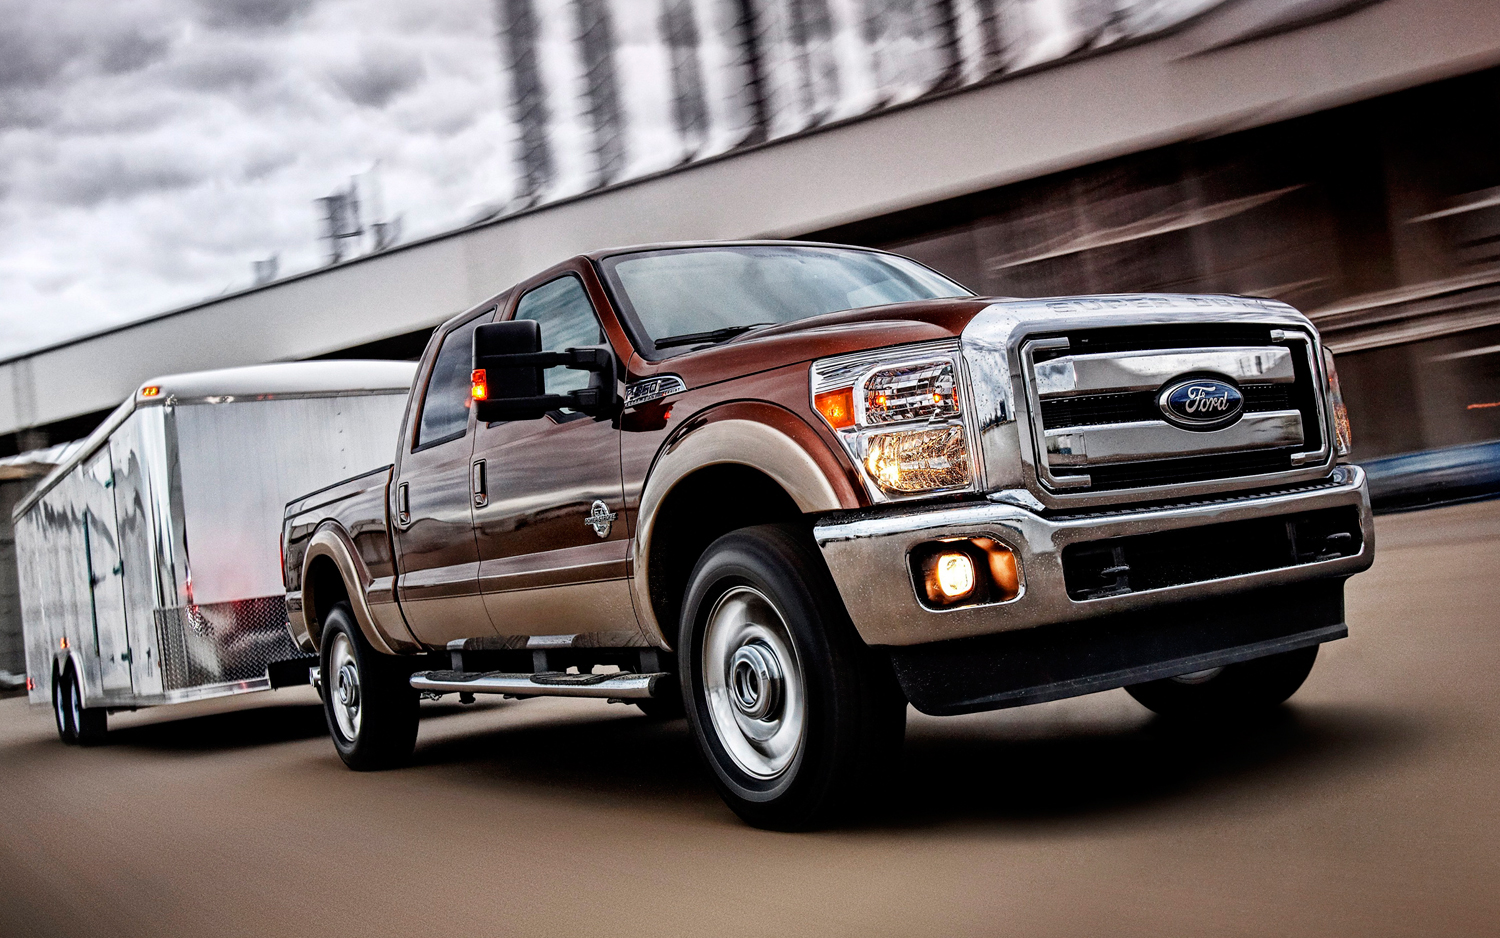 Ford Super Duty >> 2012 FORD F-350 SUPER DUTY - Image #16